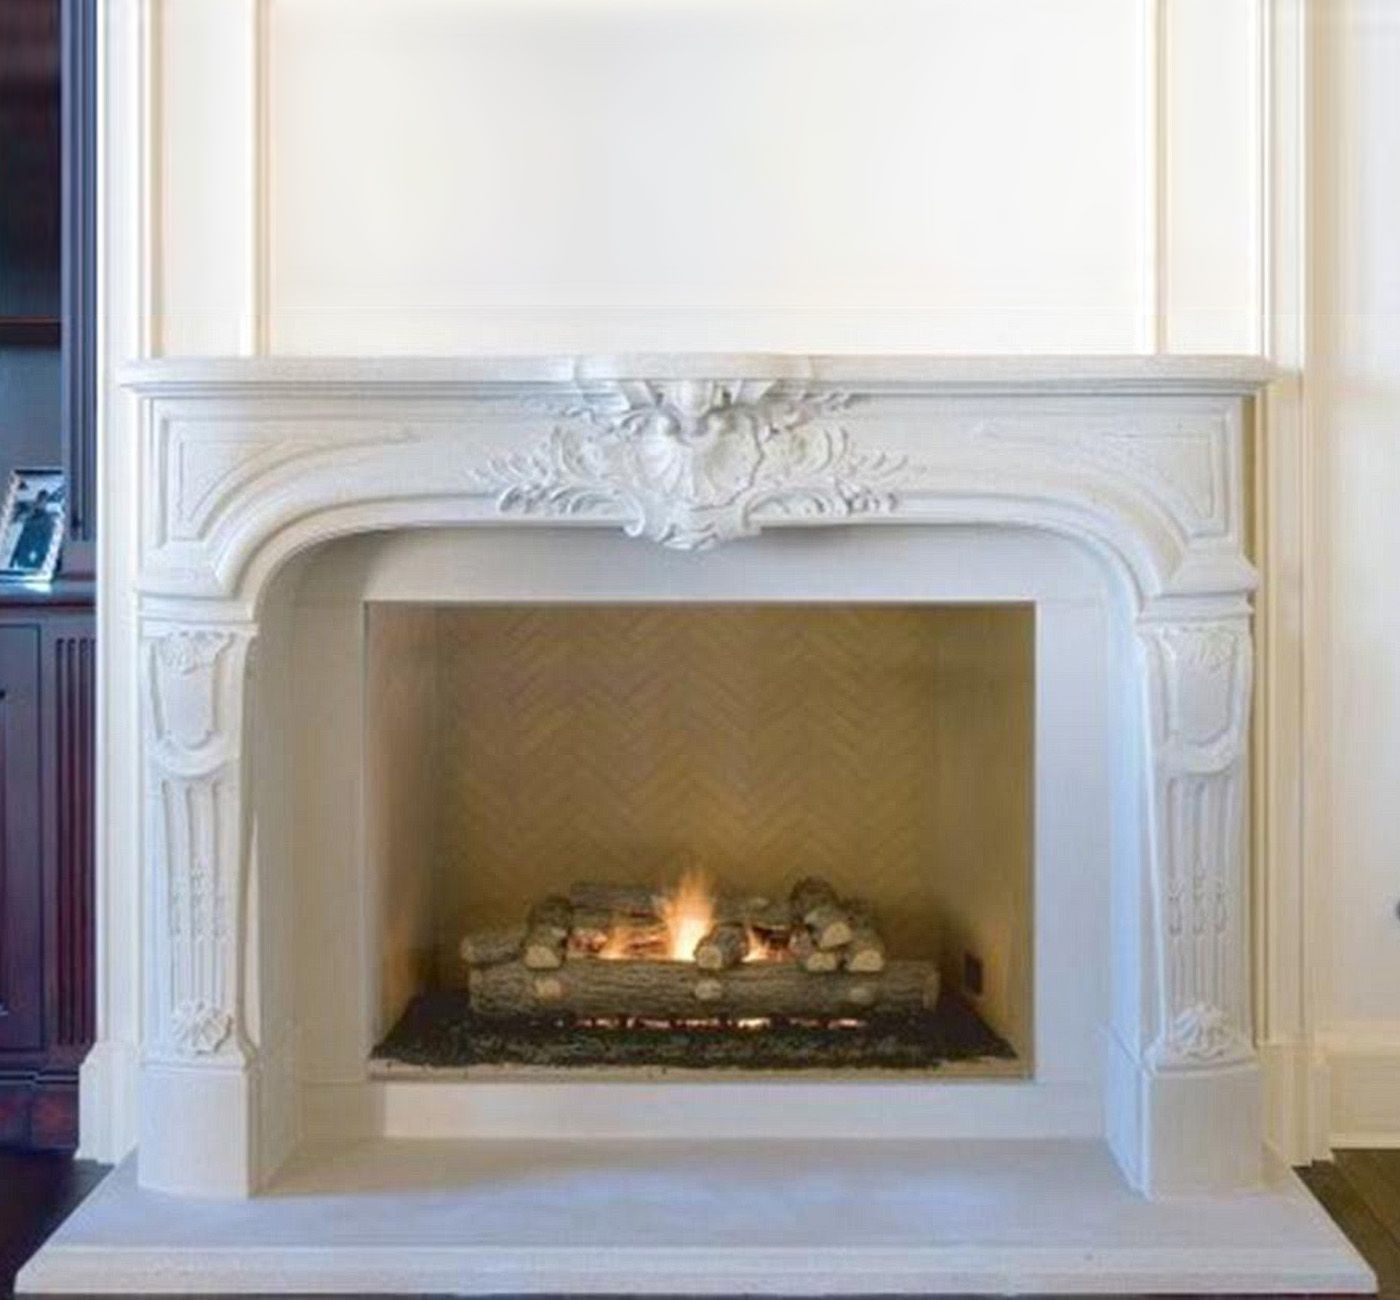 Other Color Options Avail Fireplace Mantels Fireplace